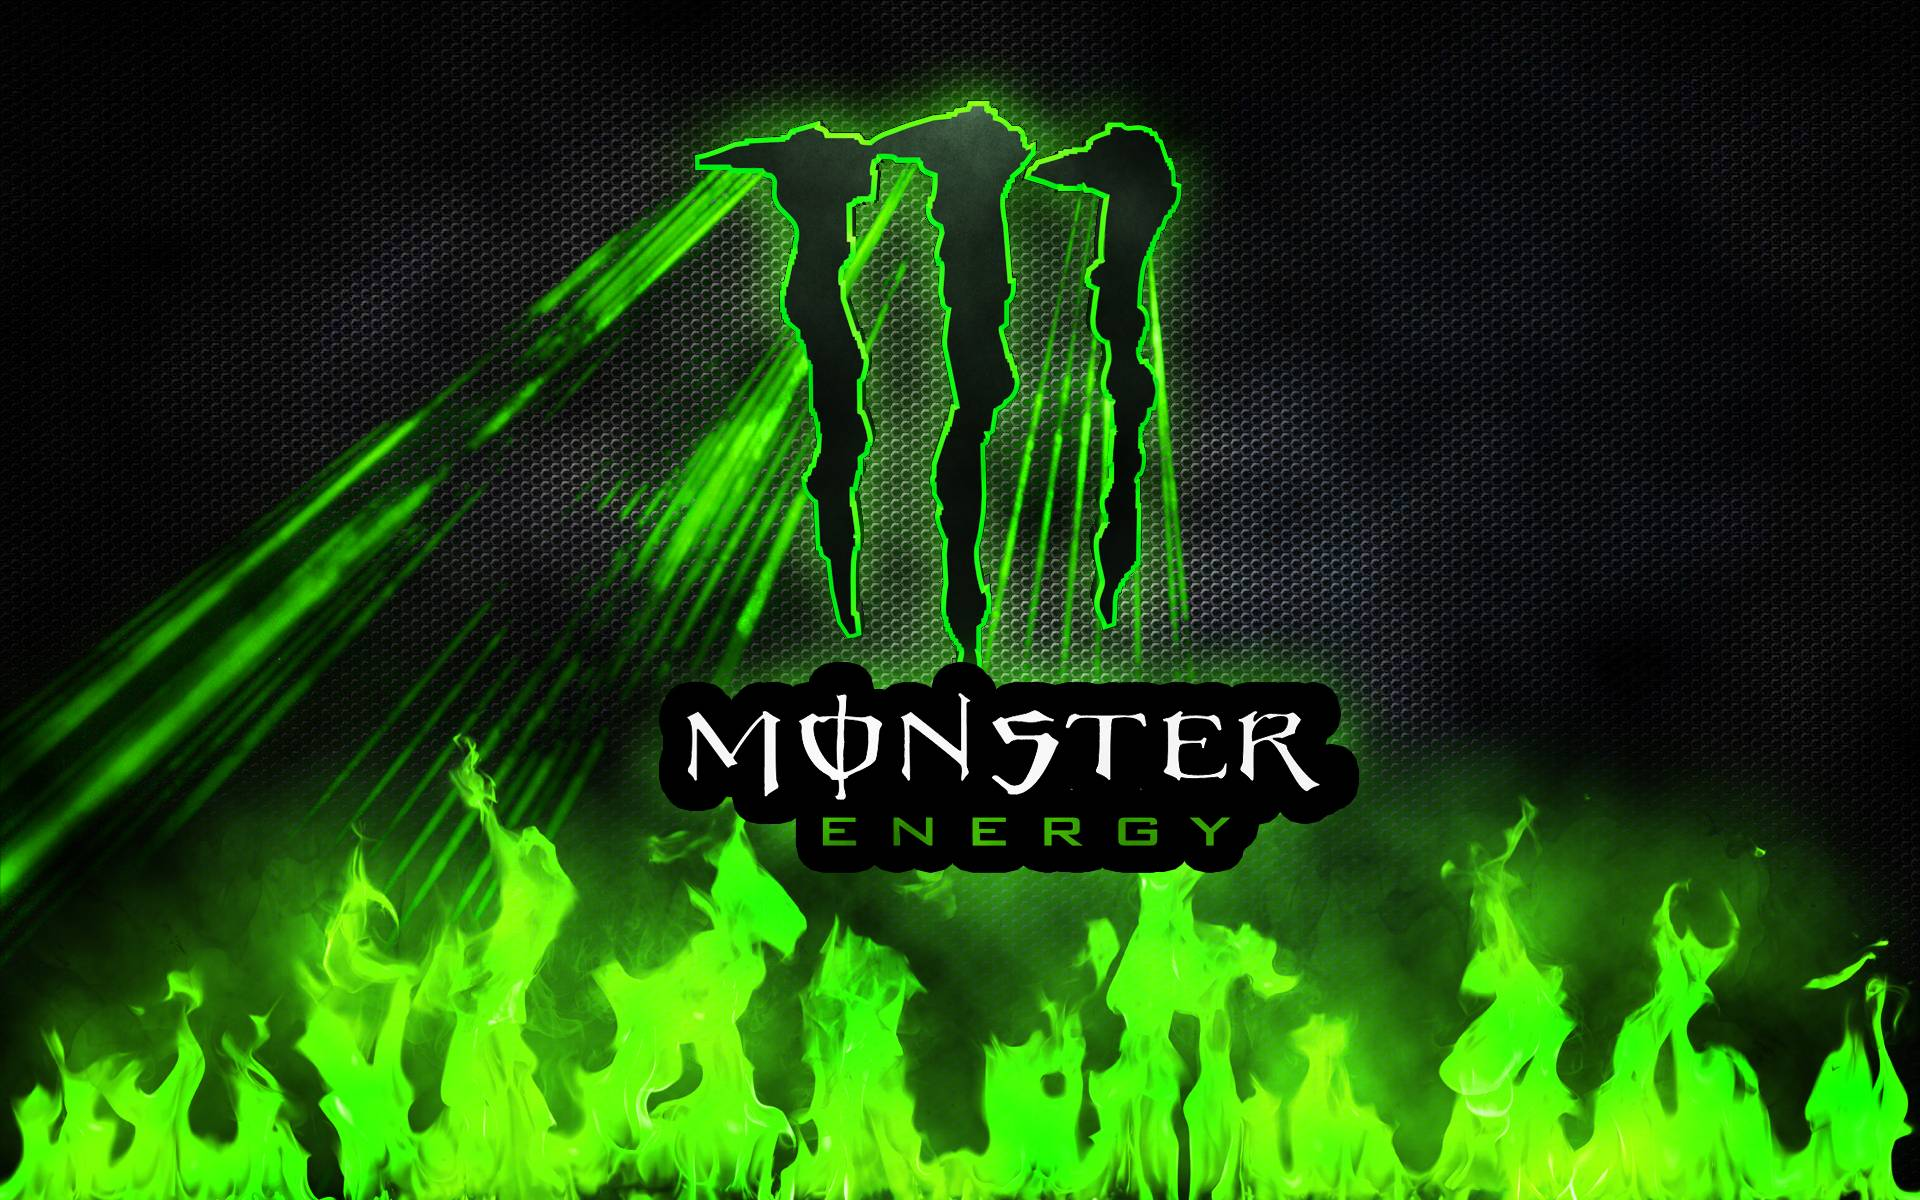 Monster Energy Wallpapers 54106 1920x1200 px ~ HDWallSource